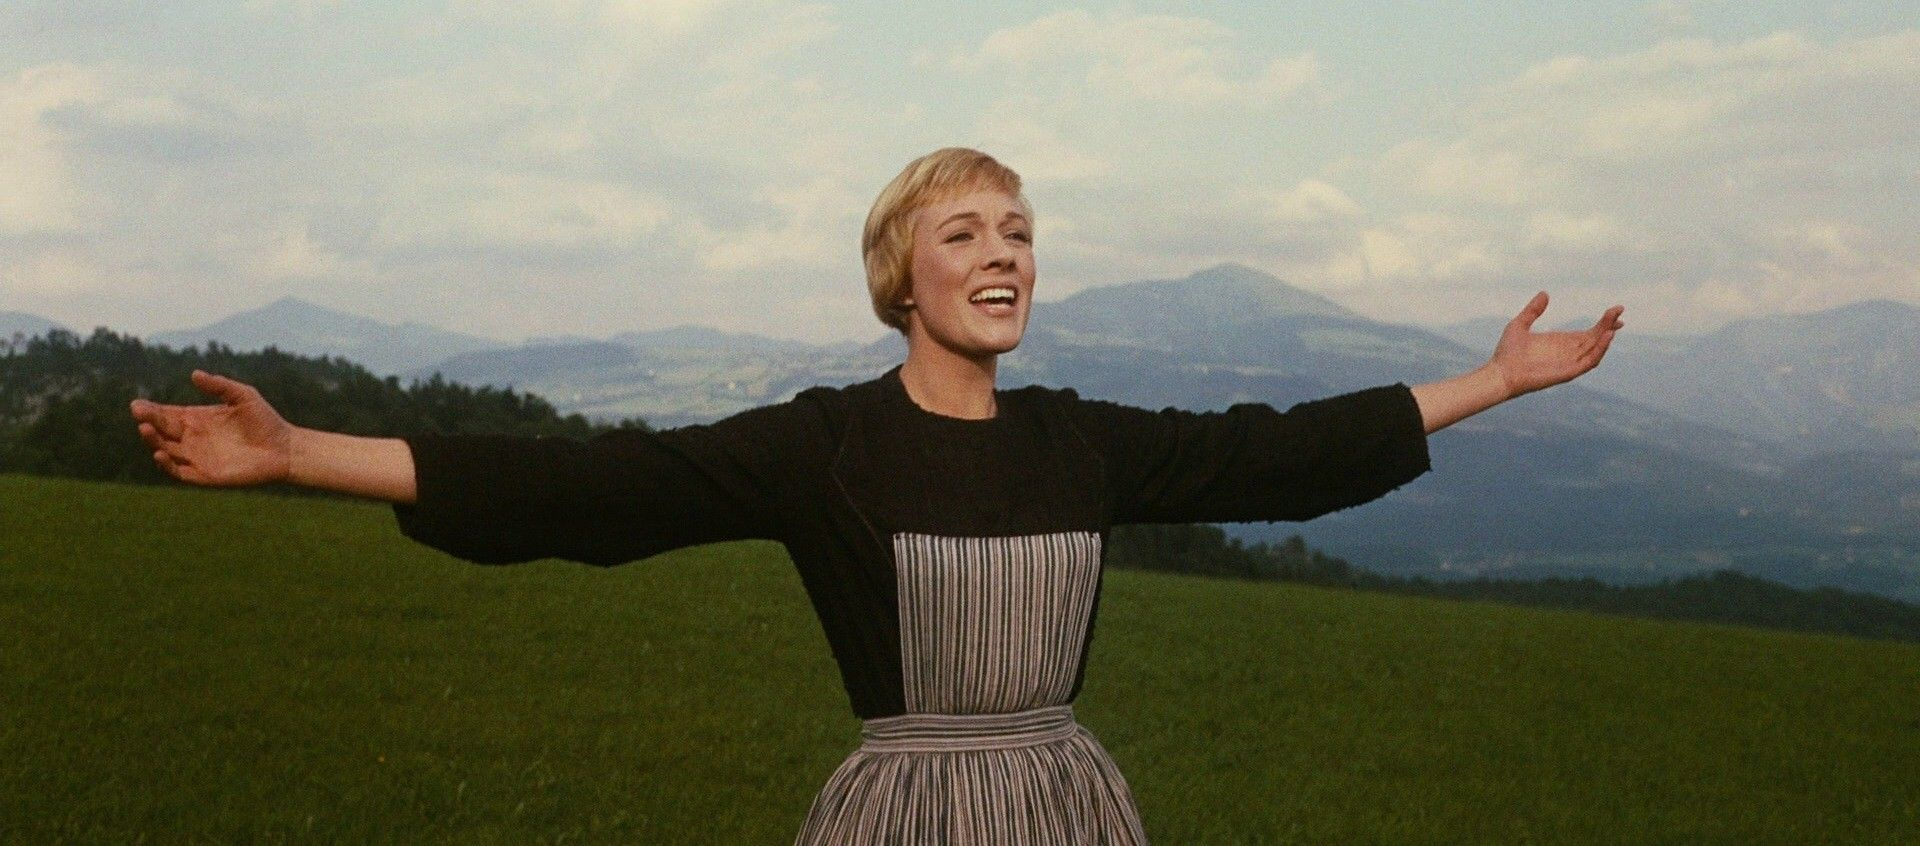 Sound of music hills are alive